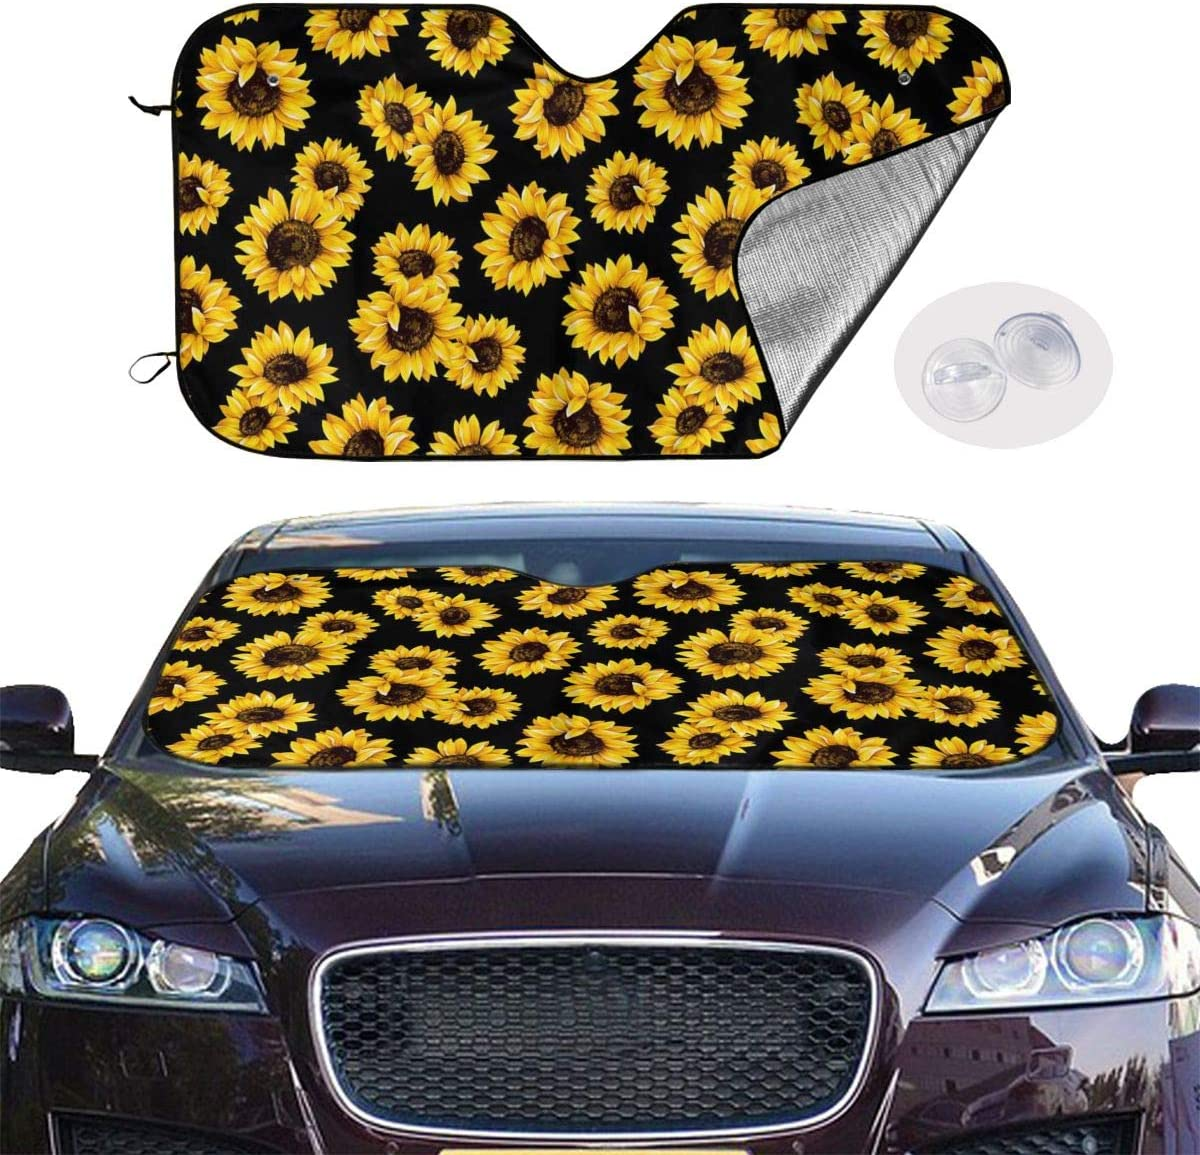 KZEMATLI Sunflower Field Car Windshield Sun Shade Easy to Use Fits Windshields of Various Sizes 51 X 27 Inch Blocks UV Rays Sun Visor Protector Sunshade to Keep Your Vehicle Cool and Damage Free